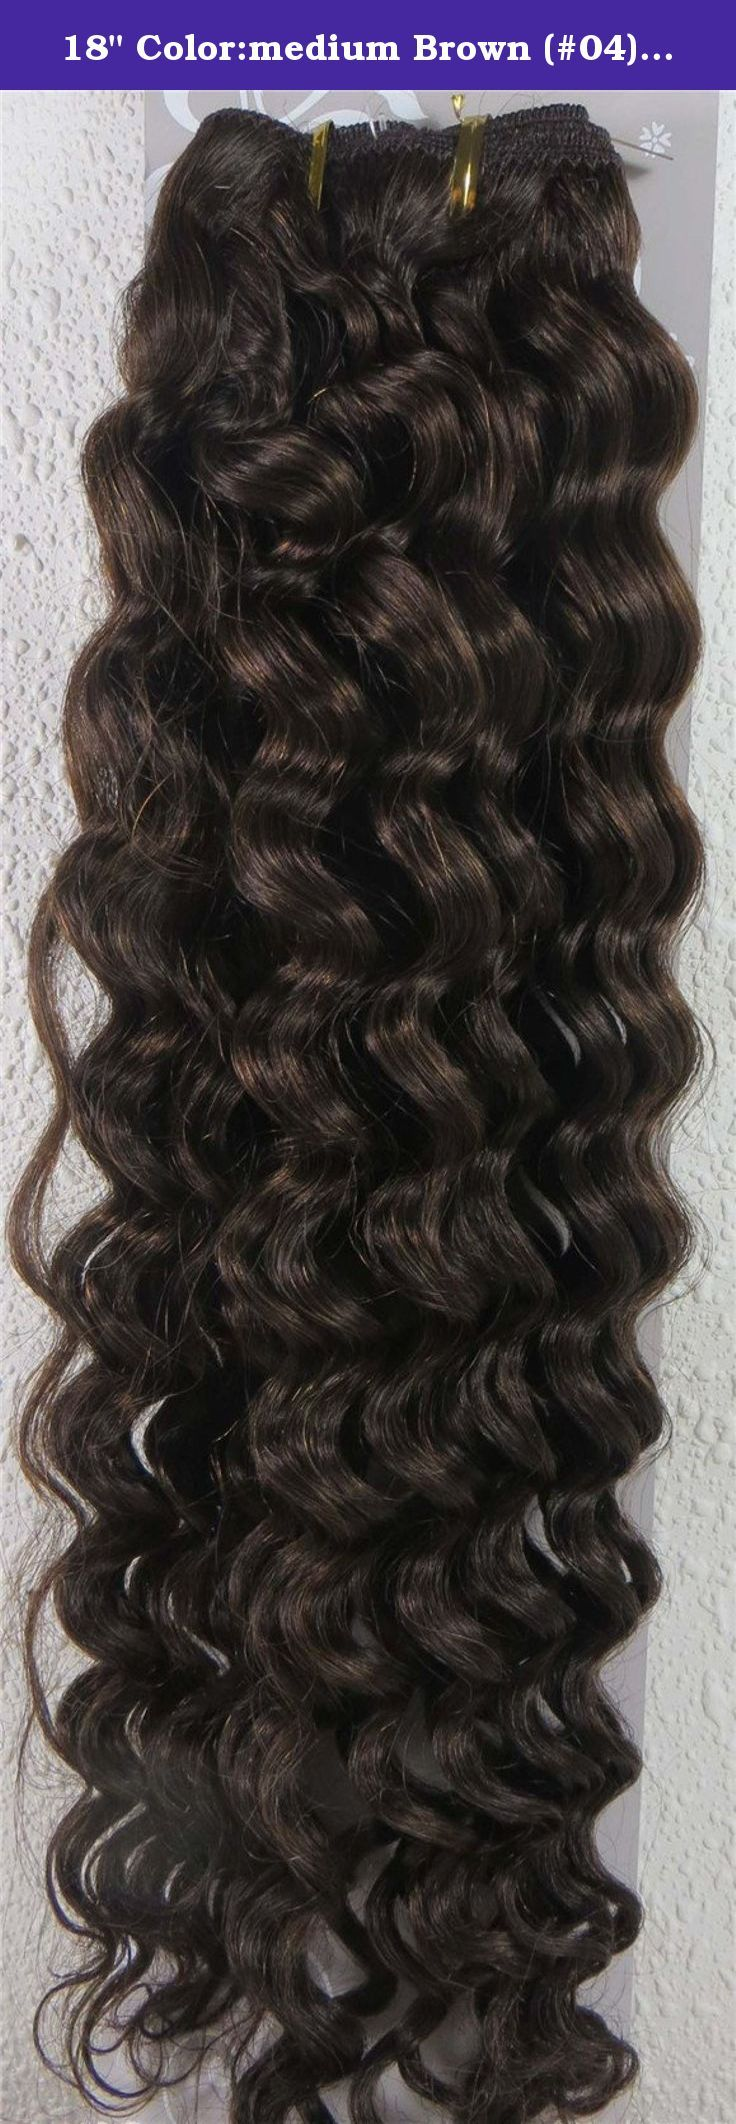 """18"""" Color:medium Brown (#04) Deep Wave Brazilian Virgin Remy Hair Wefts - 100% Raw Virgin Human Hair Weave. 100% Brazilian Virgin Hair and very competitive price. Wide weft without clips, perfect for fusion method or use clips in extensions, etc. Can be washed, heat styled. High quality, tangle free,long last. ."""